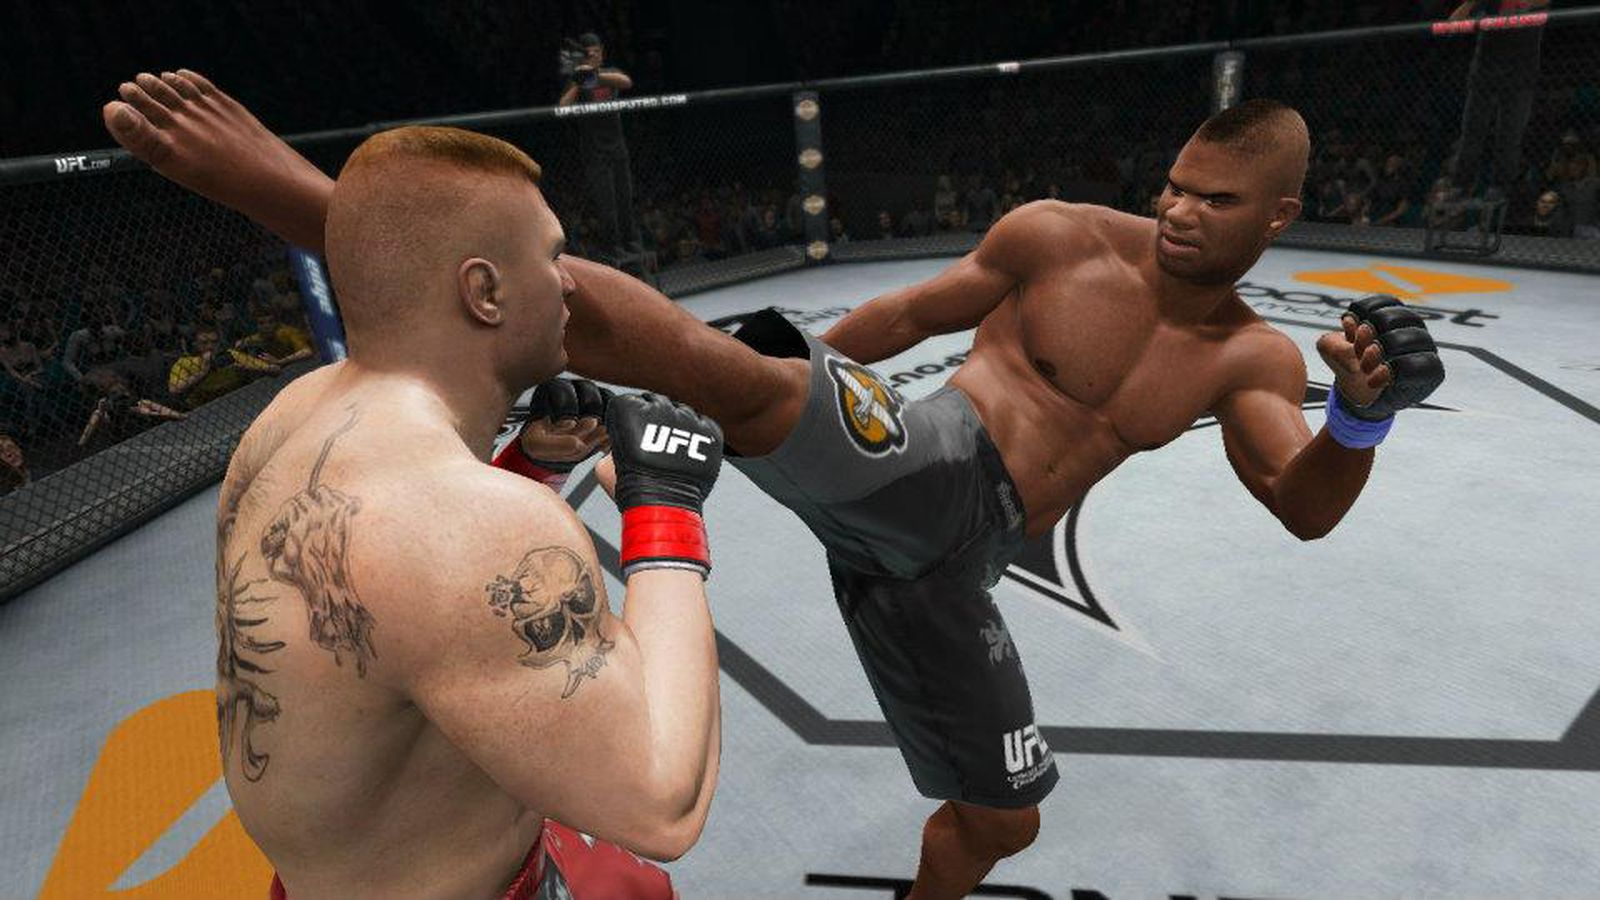 THQ reveals details of UFC Undisputed 3 online features ...